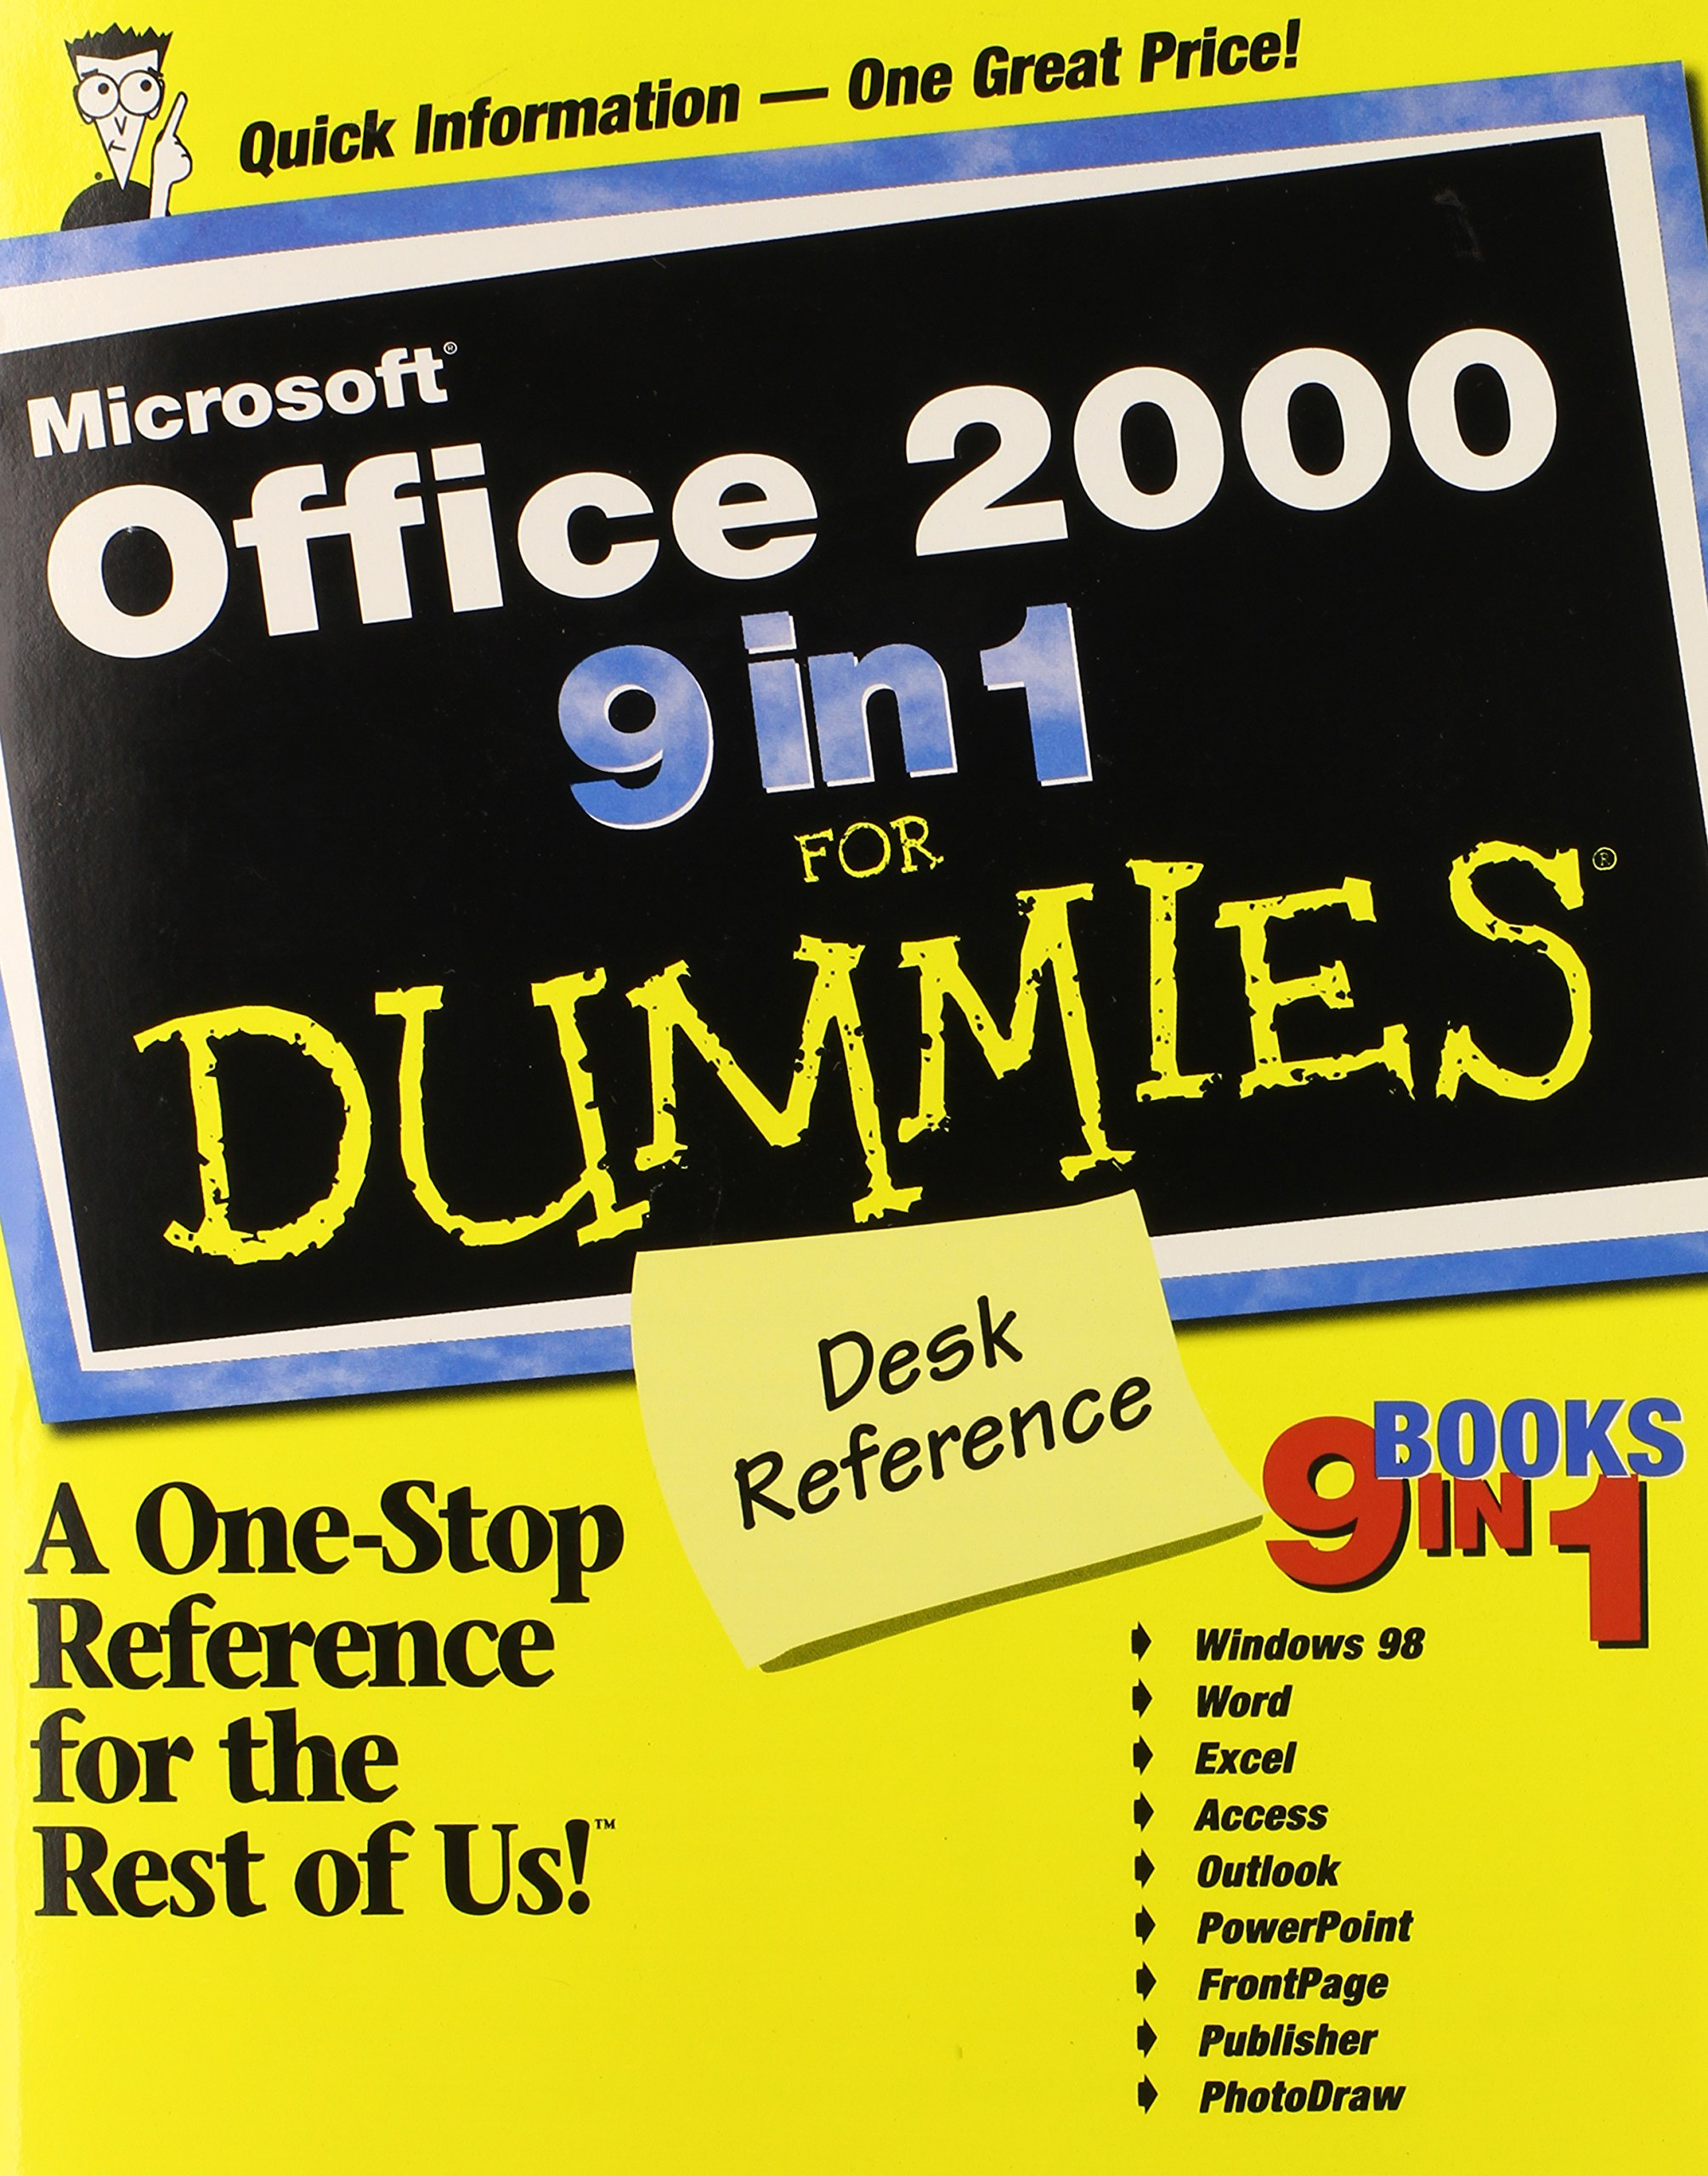 Buy Microsoft Office 9 9 in 9 For Dummies Desk Reference Book ...